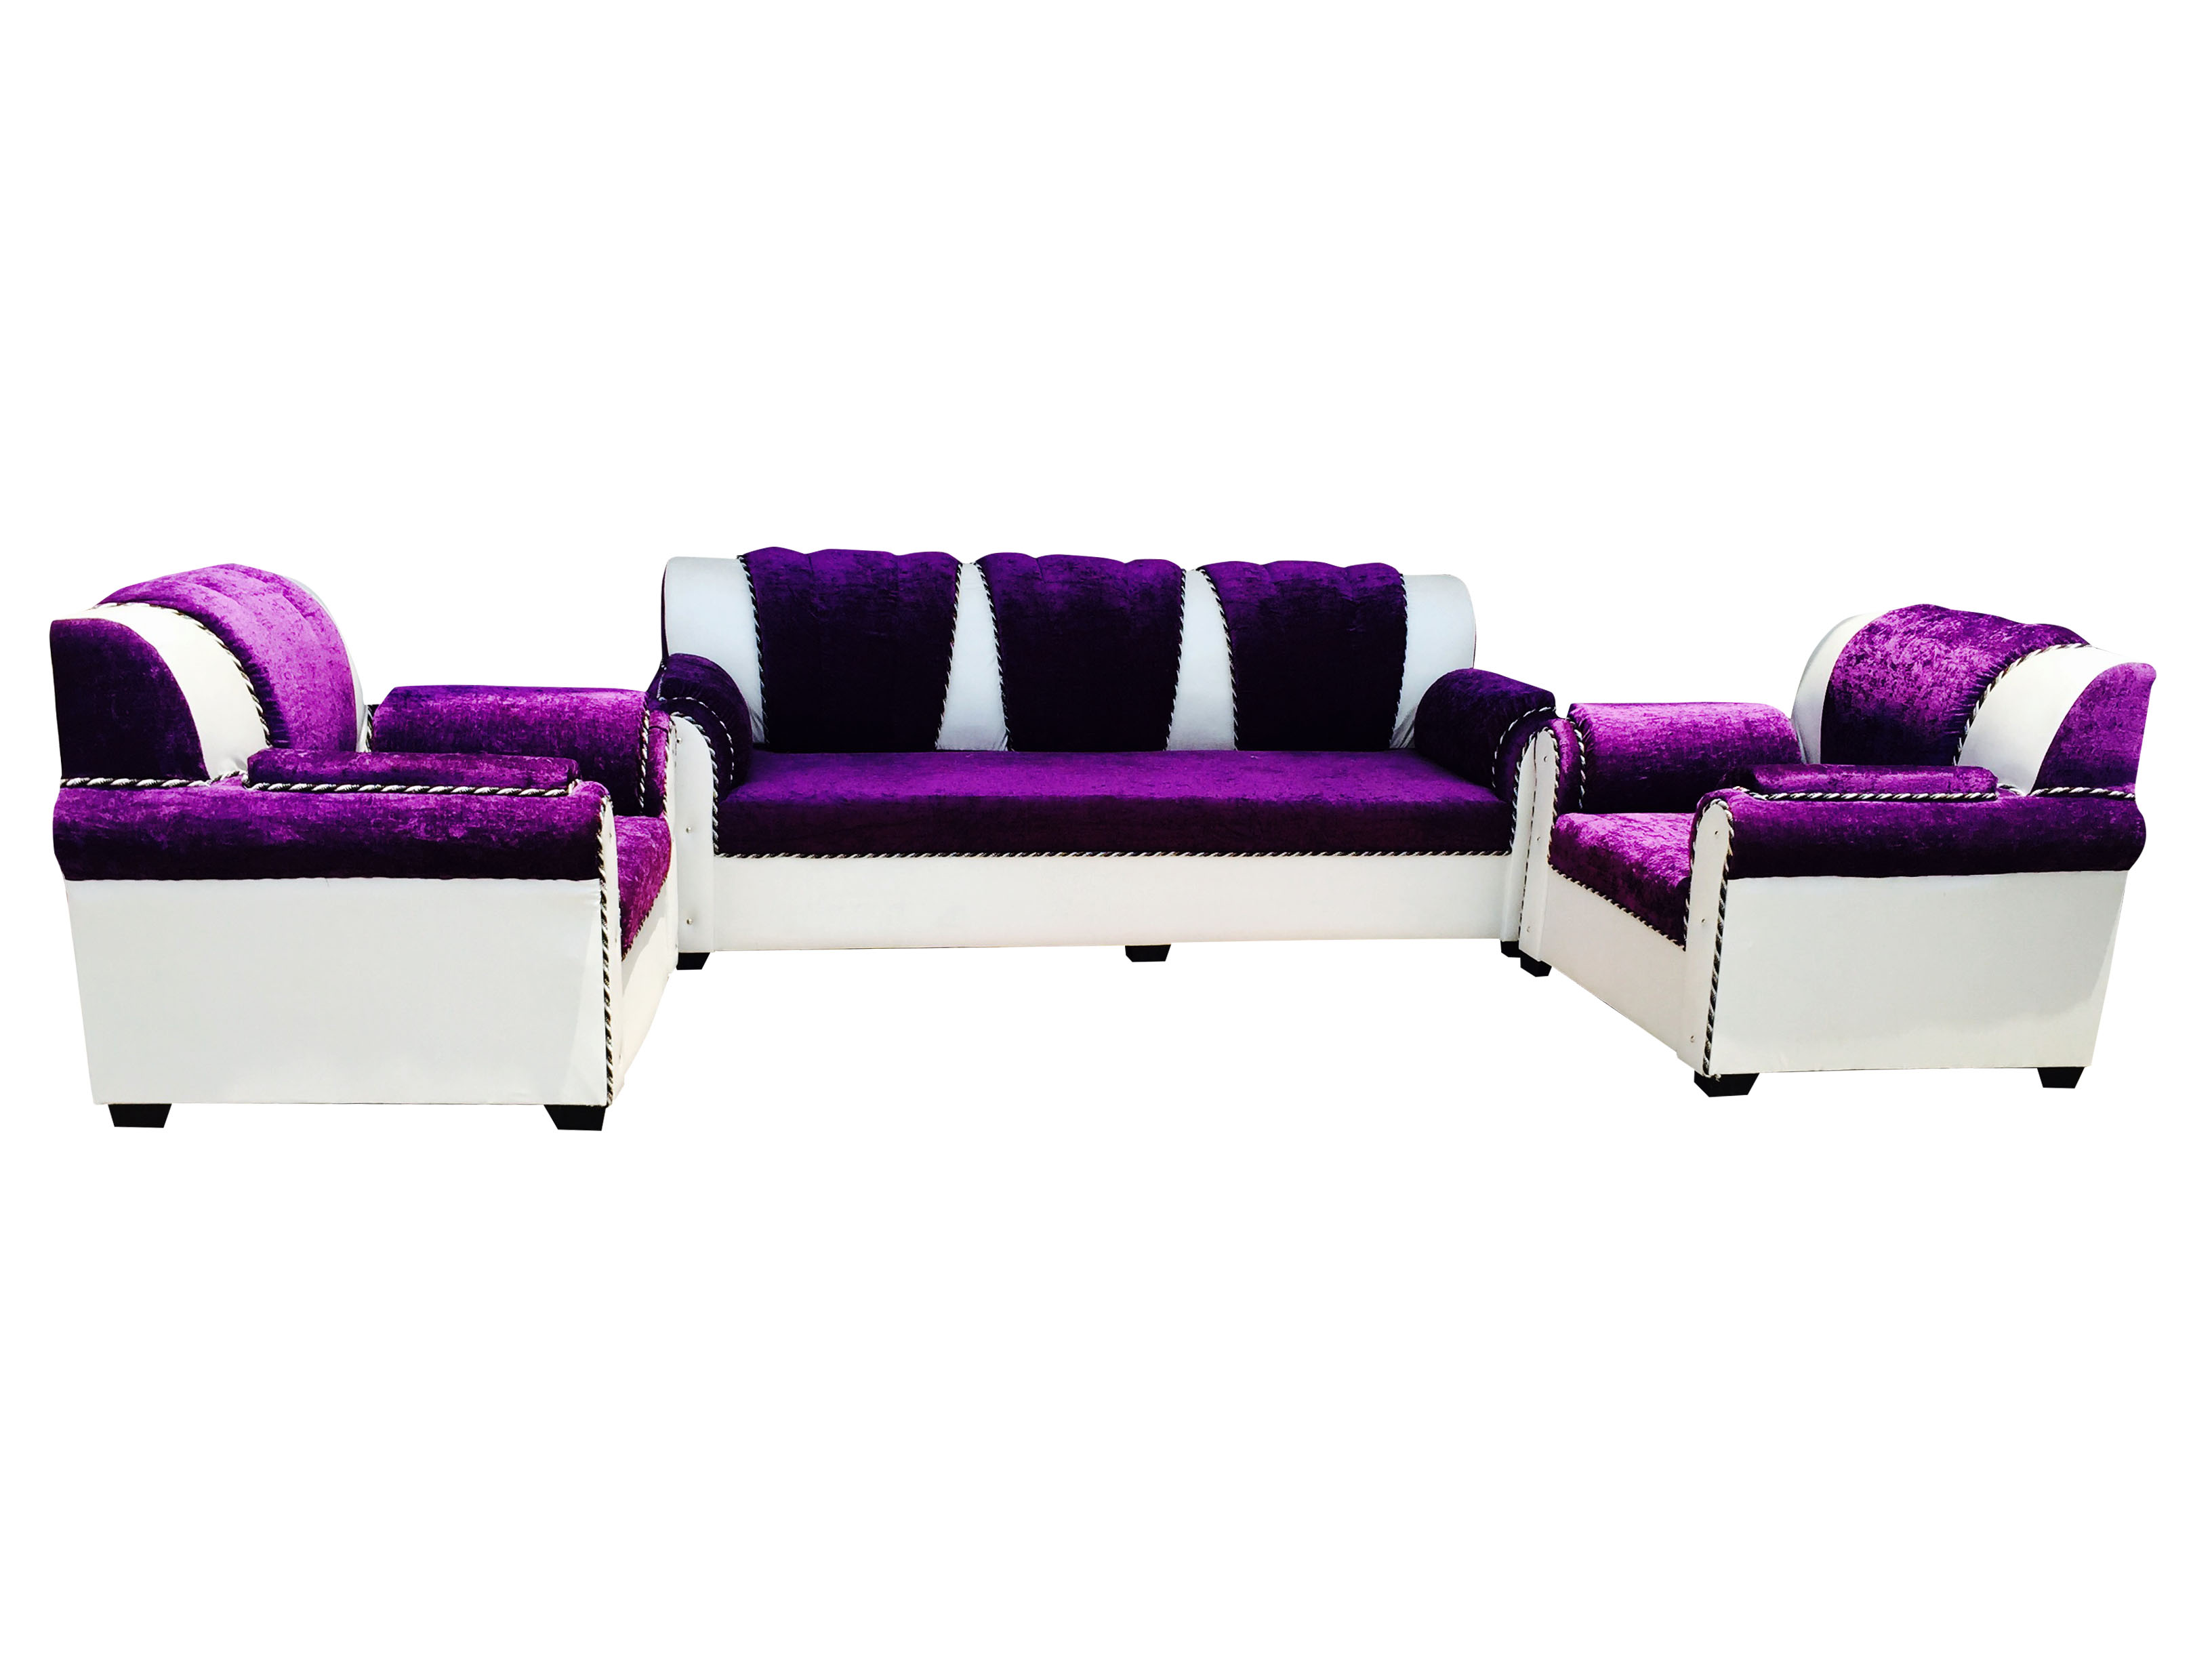 Butterfly 5 Seater Sofa Set Purpal White Dream Furniture